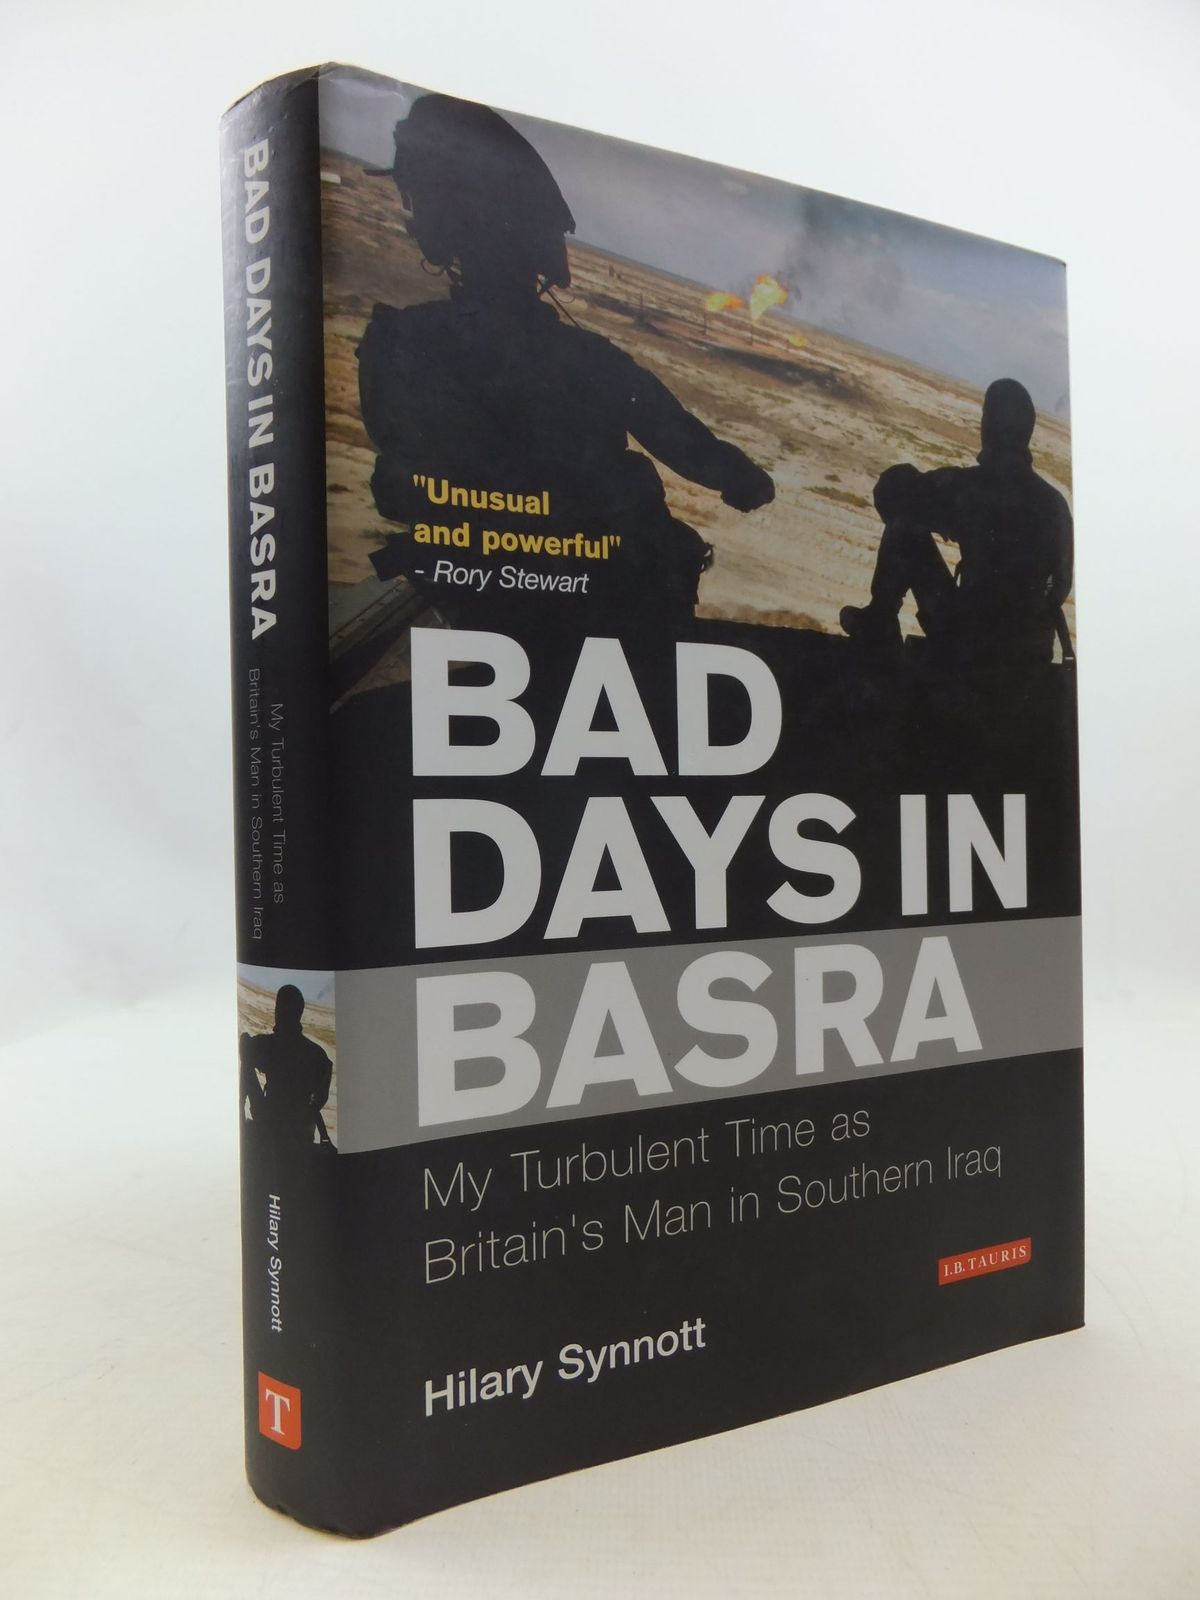 Photo of BAD DAYS IN BASRA MY TURBULENT TIME AS BRITAIN'S MAN IN SOUTHERN IRAQ written by Synnott, Hilary published by I.B. Tauris & Co. Ltd. (STOCK CODE: 2111160)  for sale by Stella & Rose's Books